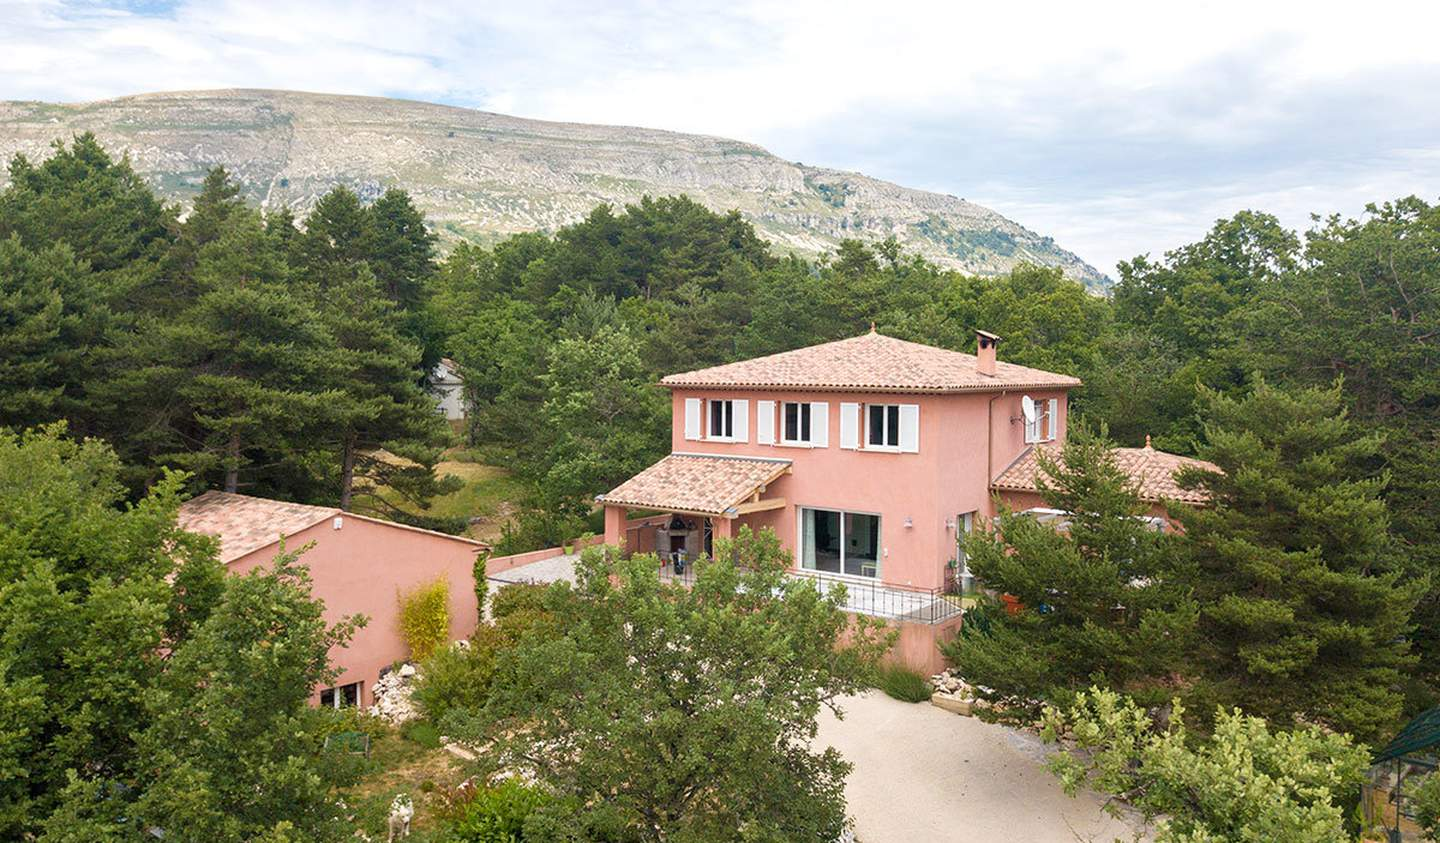 Villa with garden and terrace Caussols